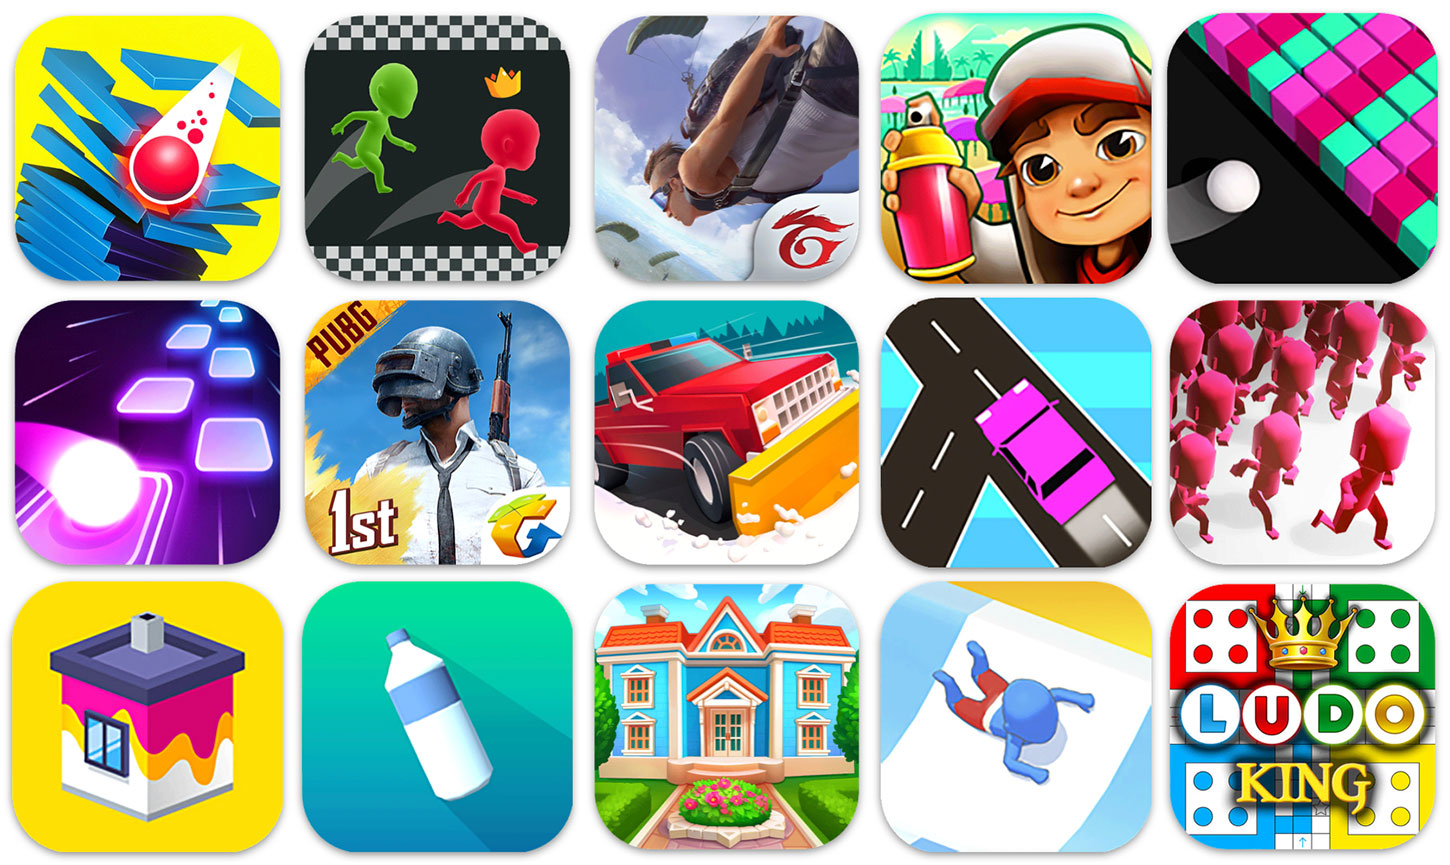 Top 10 Most Downloaded Mobile Games In the World